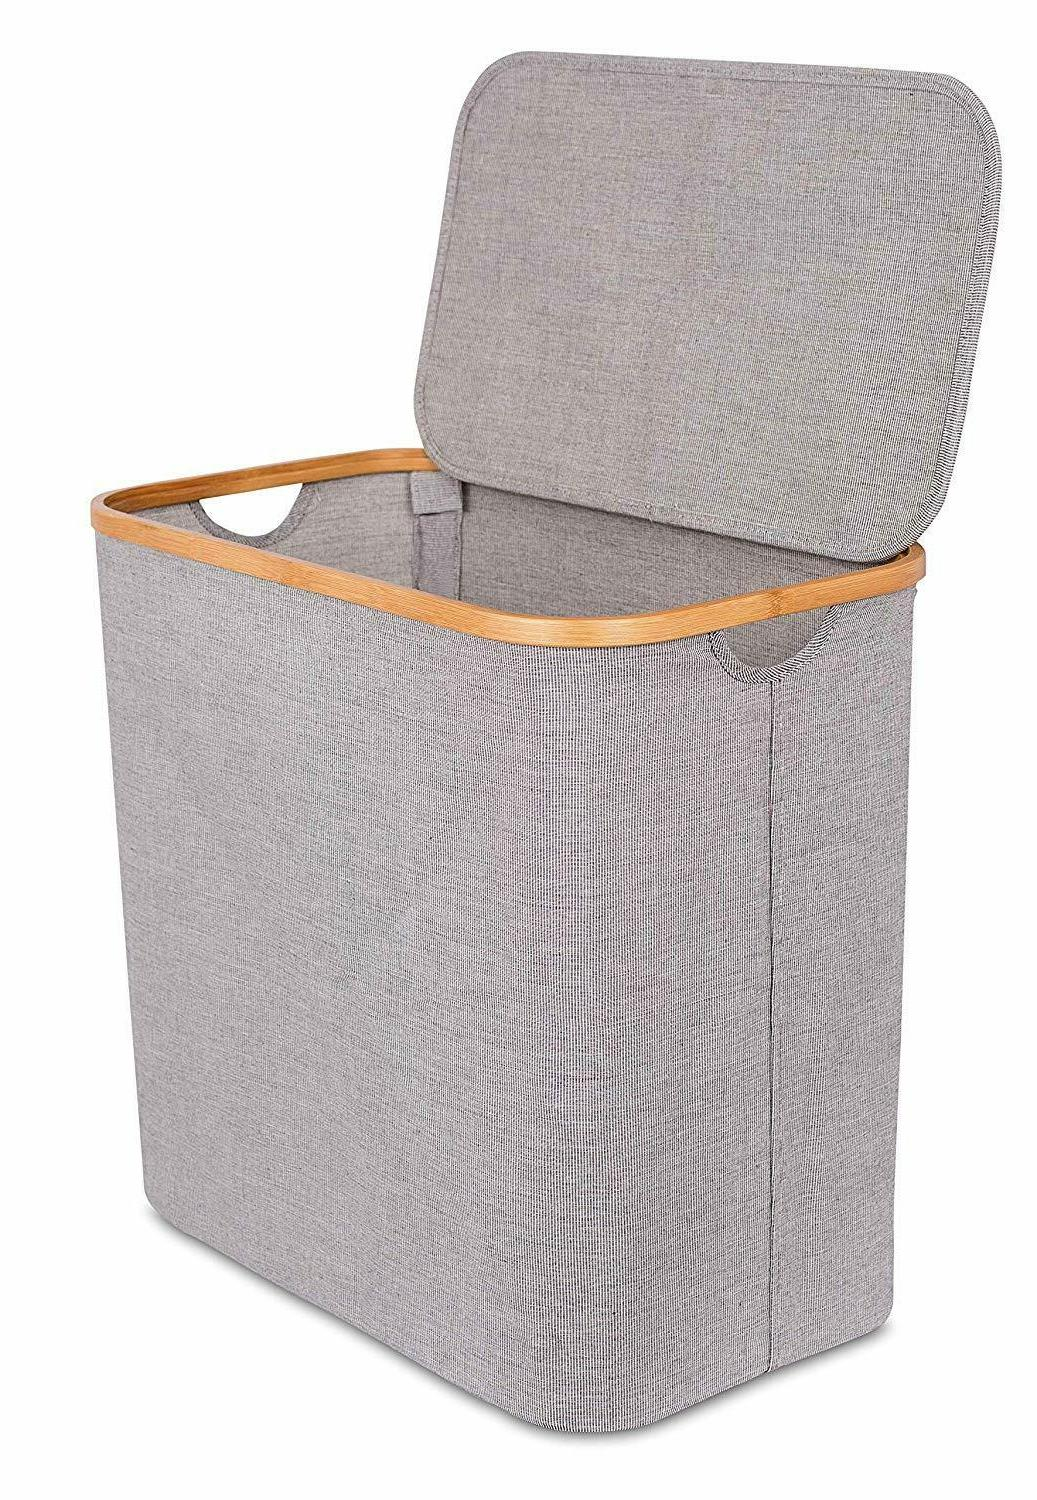 Bamboo & Canvas Hamper - Single Laundry Basket with Lid - Mo